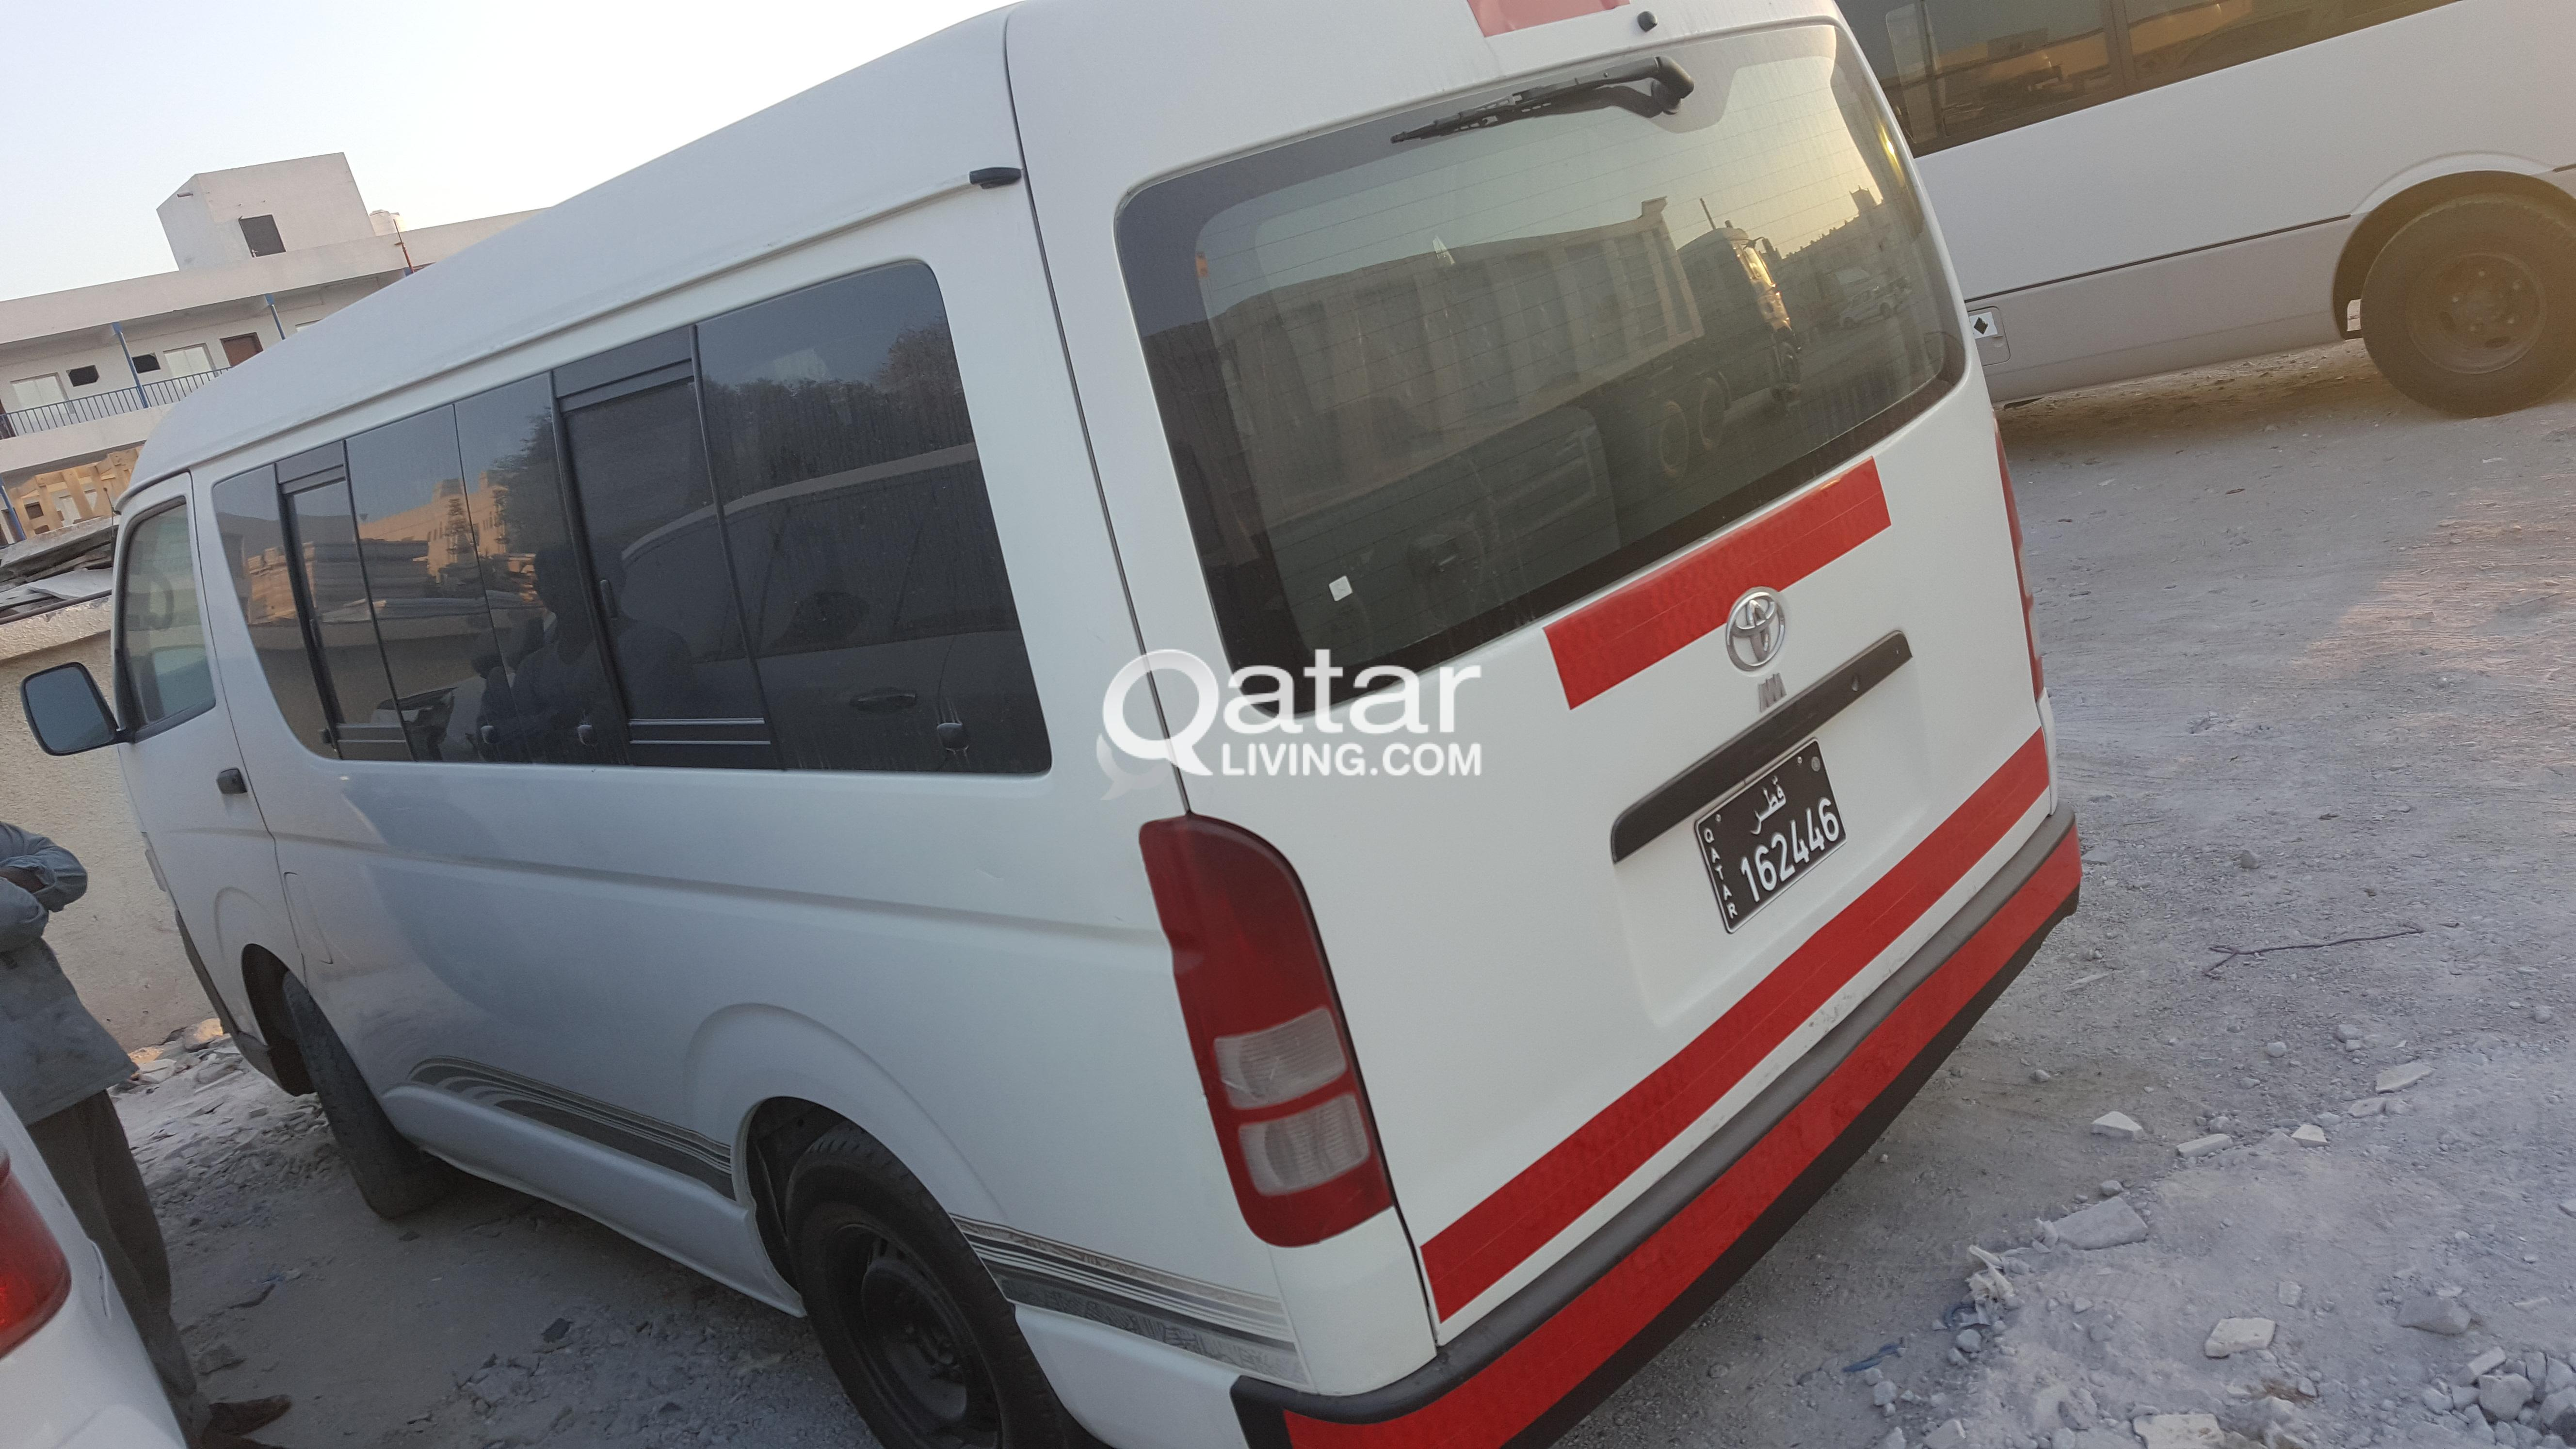 Toyota Hiace 2011 15 seat bus for sale @24000 only | Qatar Living